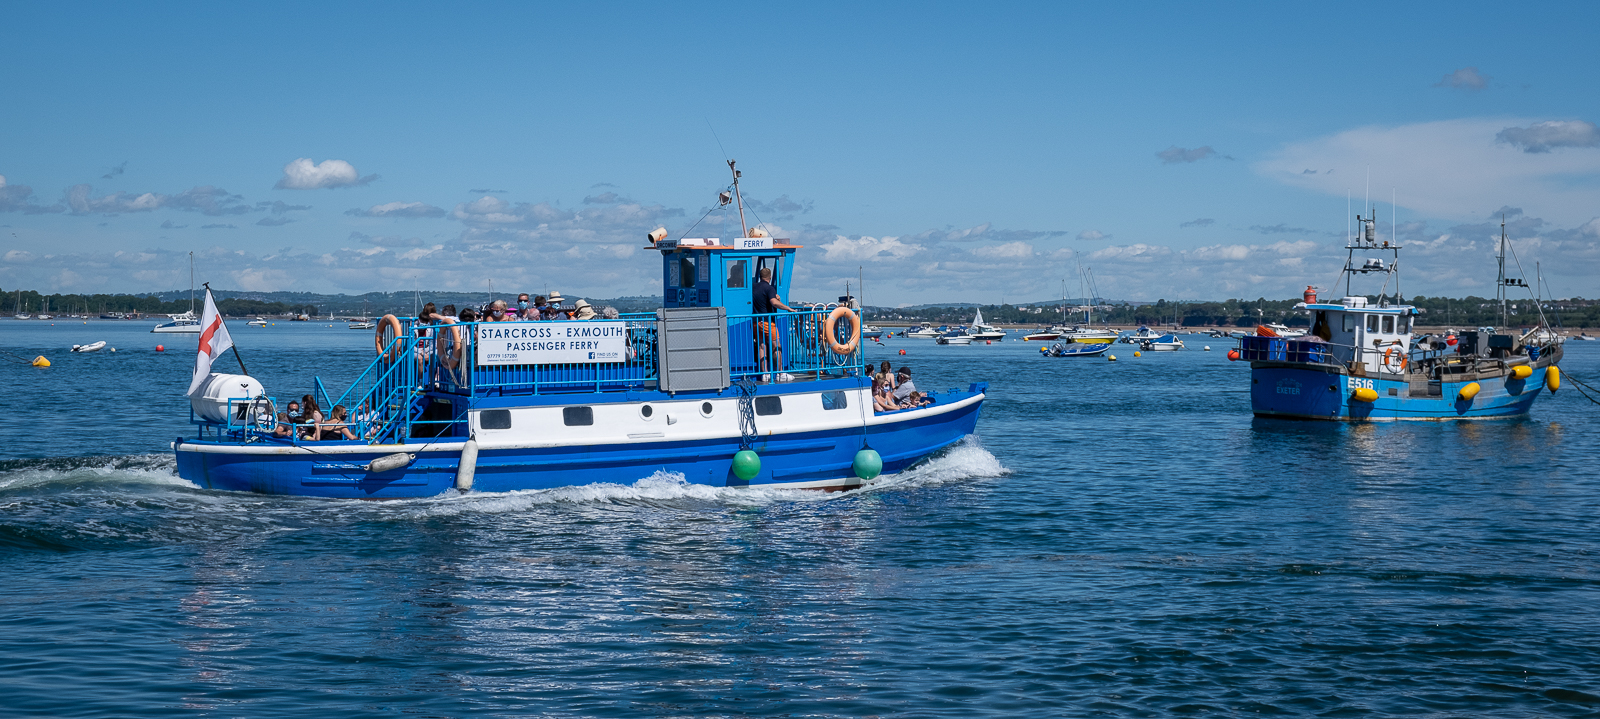 Exmouth Starcross Ferry